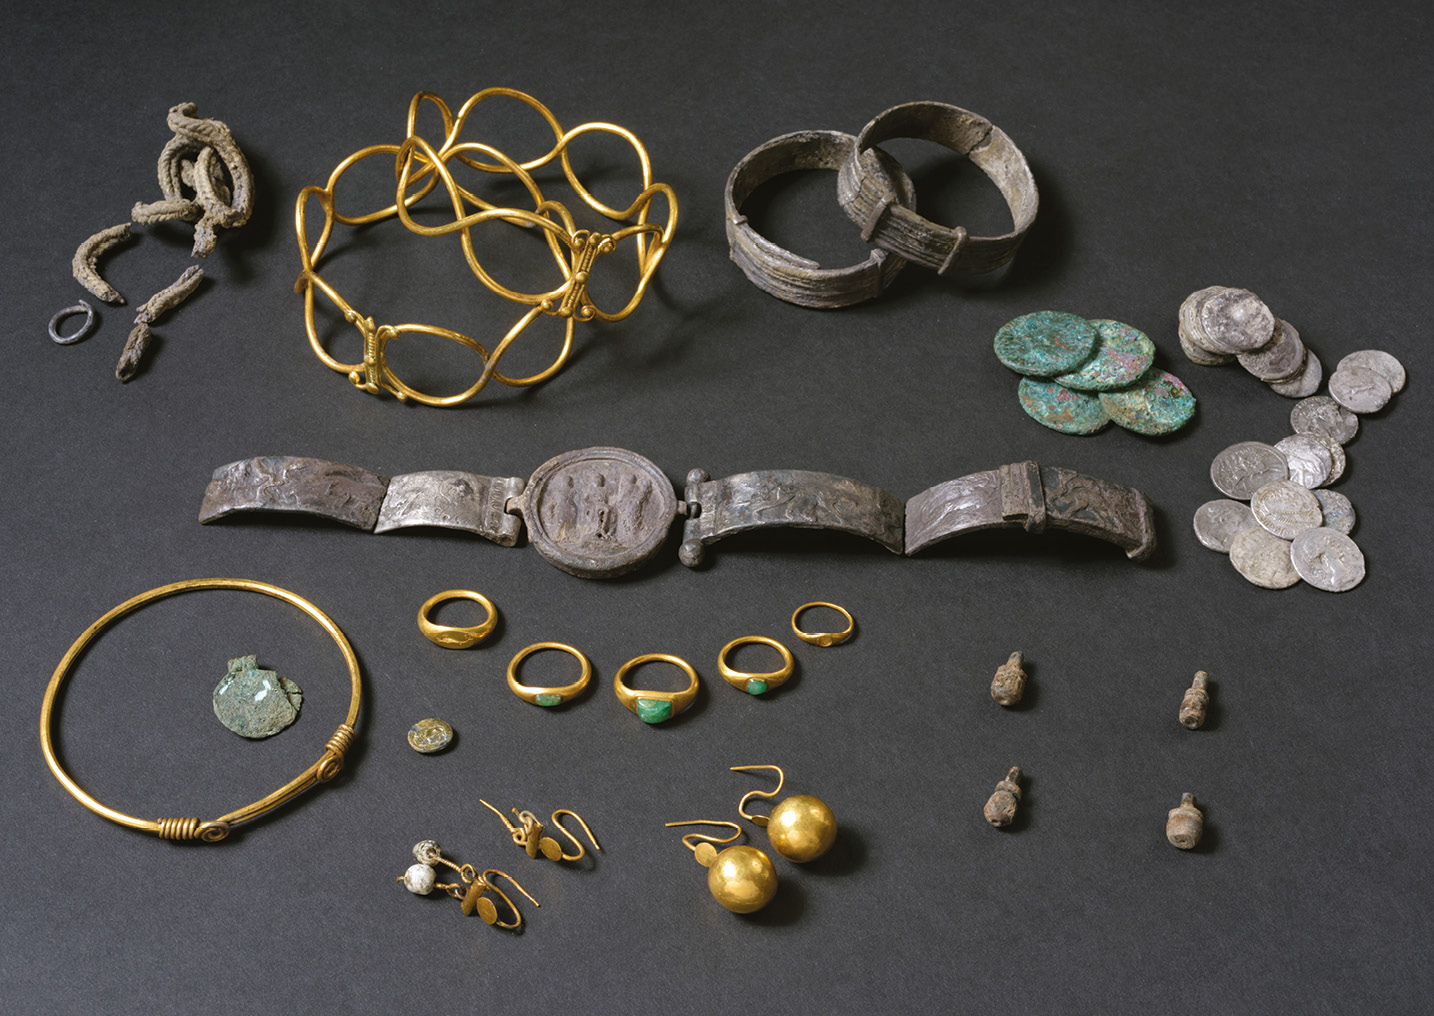 below The Fenwick Treasure had been buried beneath the floor of a Roman house at around the time of the Iceni destruction of Colchester. The dwelling was subsequently burnt to the ground, and the owners of the jewellery evidently did not return to reclaim their possessions.